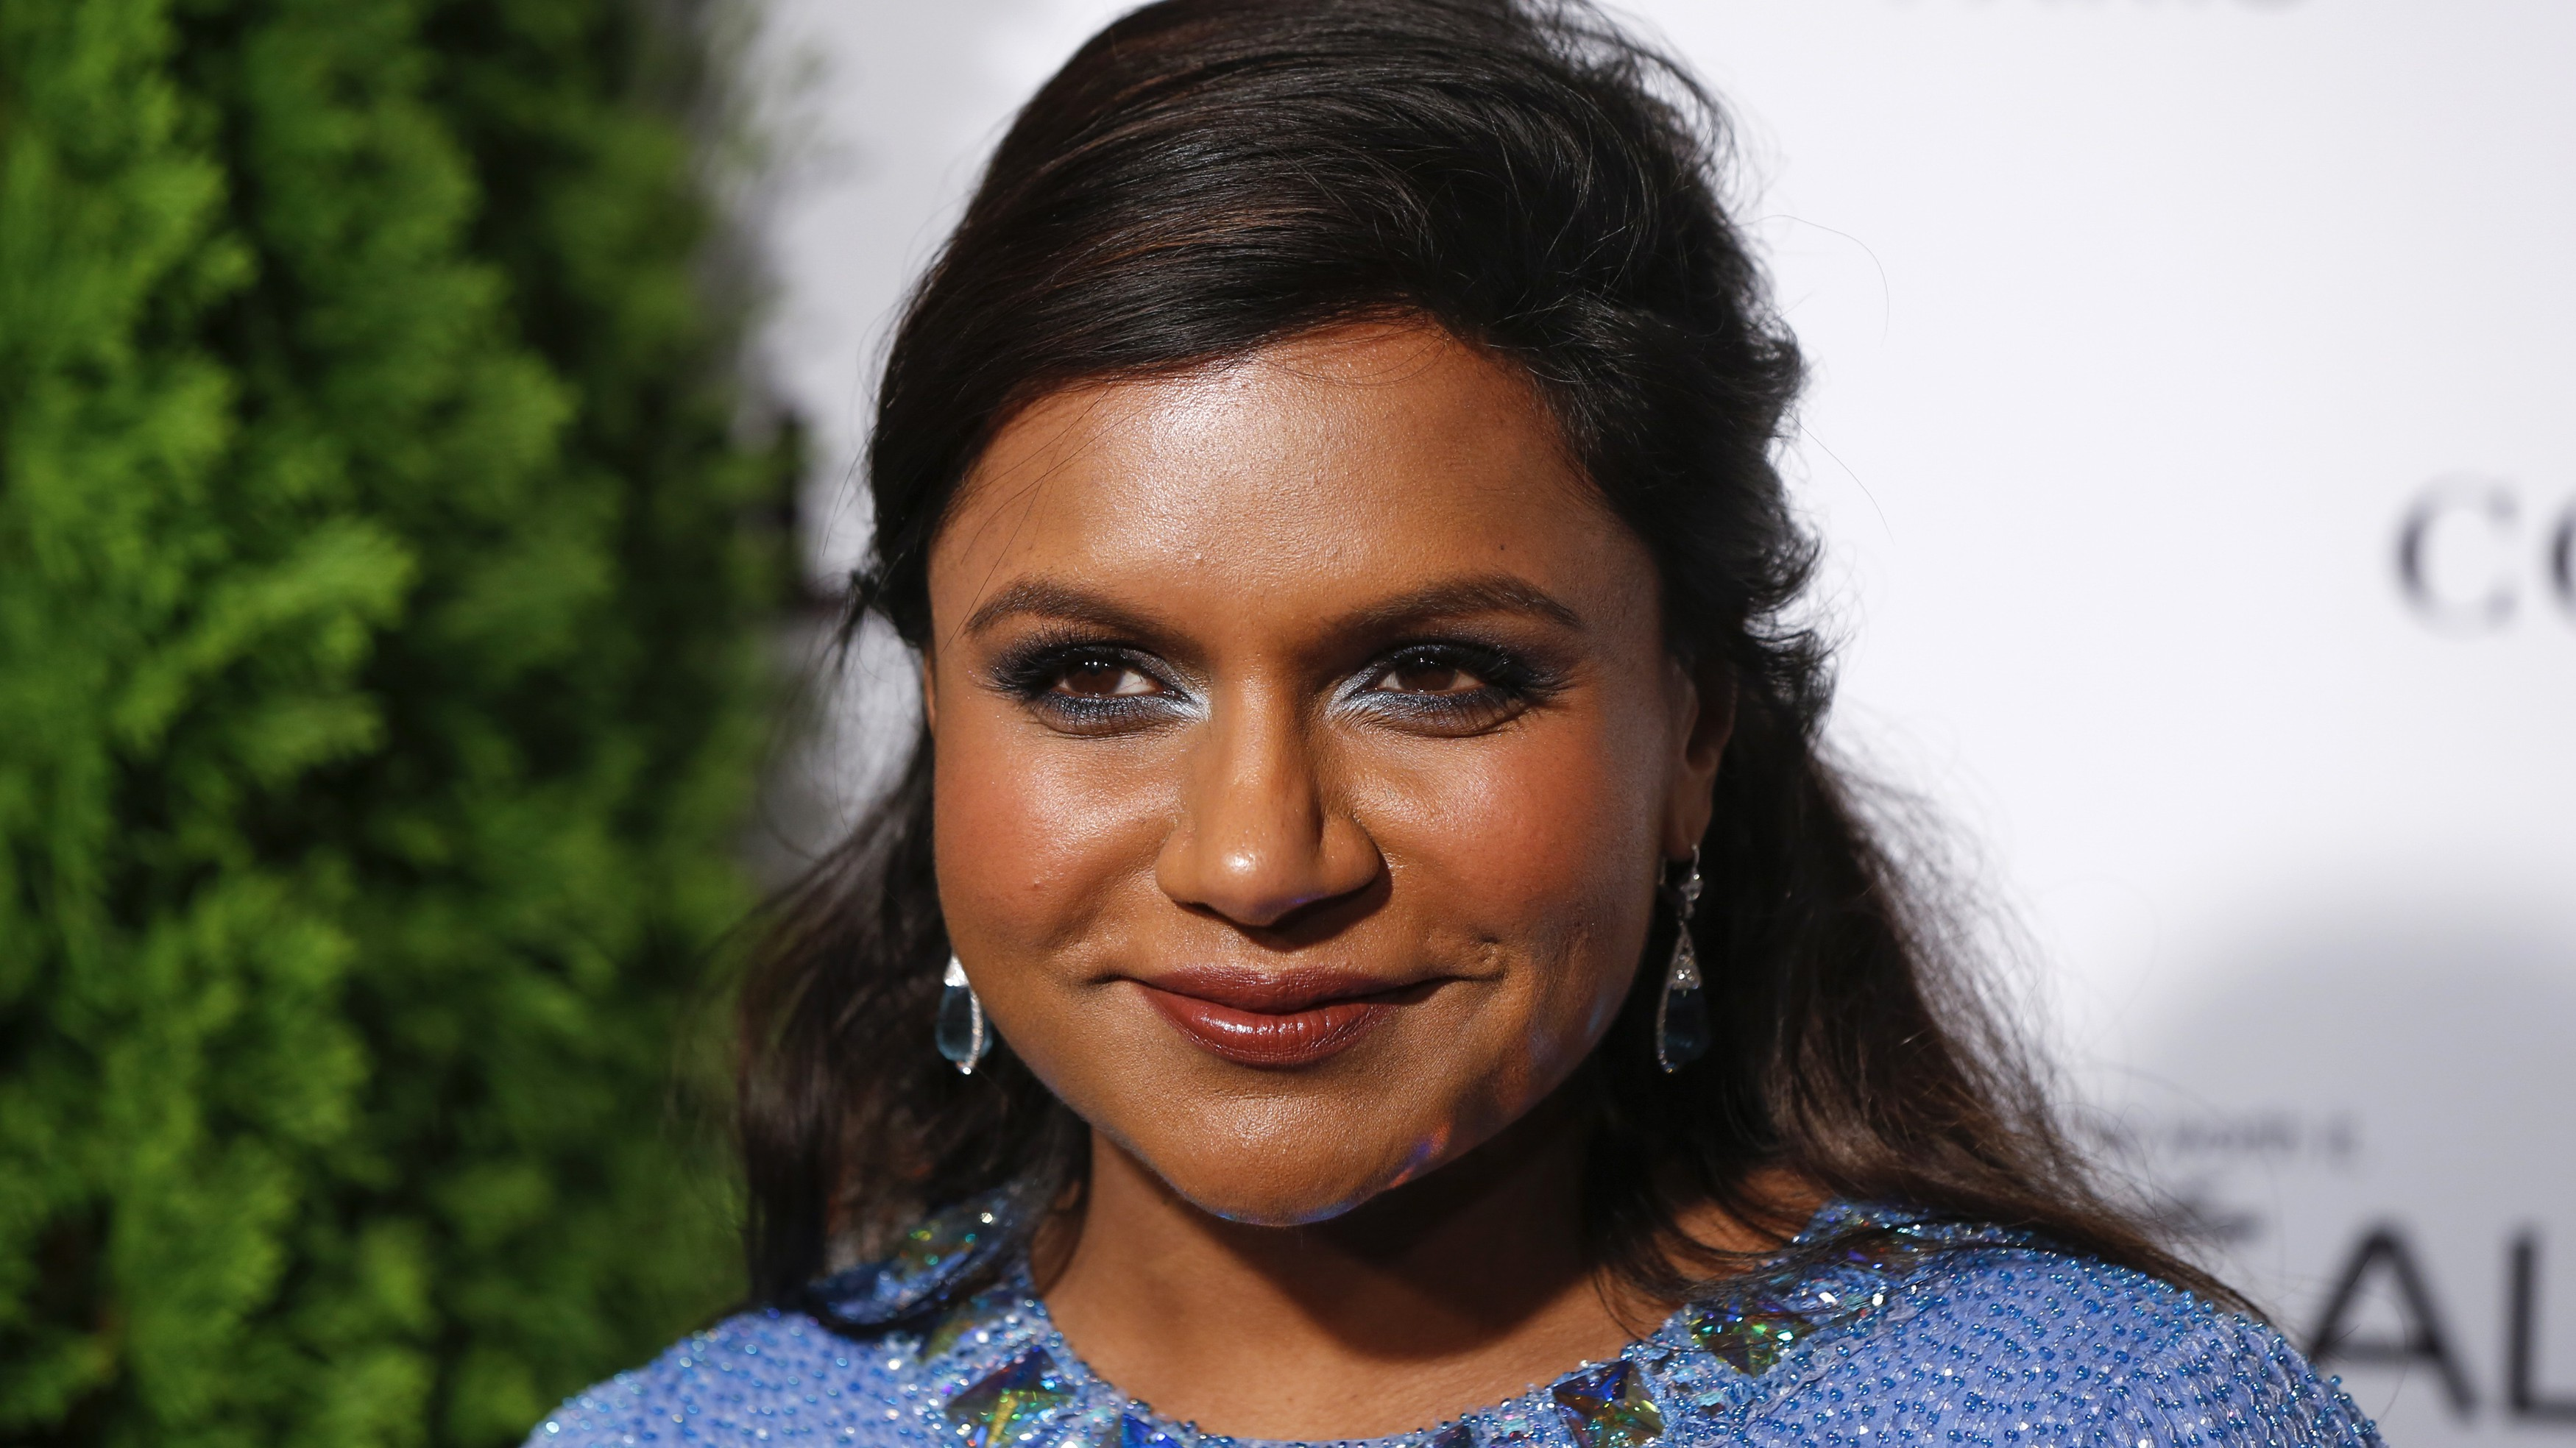 Actress Mindy Kaling arrives for Glamour Magazine's annual Women of the Year award ceremony in New York November 10, 2014.  REUTERS/Lucas Jackson (UNITED STATES - Tags: ENTERTAINMENT HEADSHOT) - RTR4DNMQ